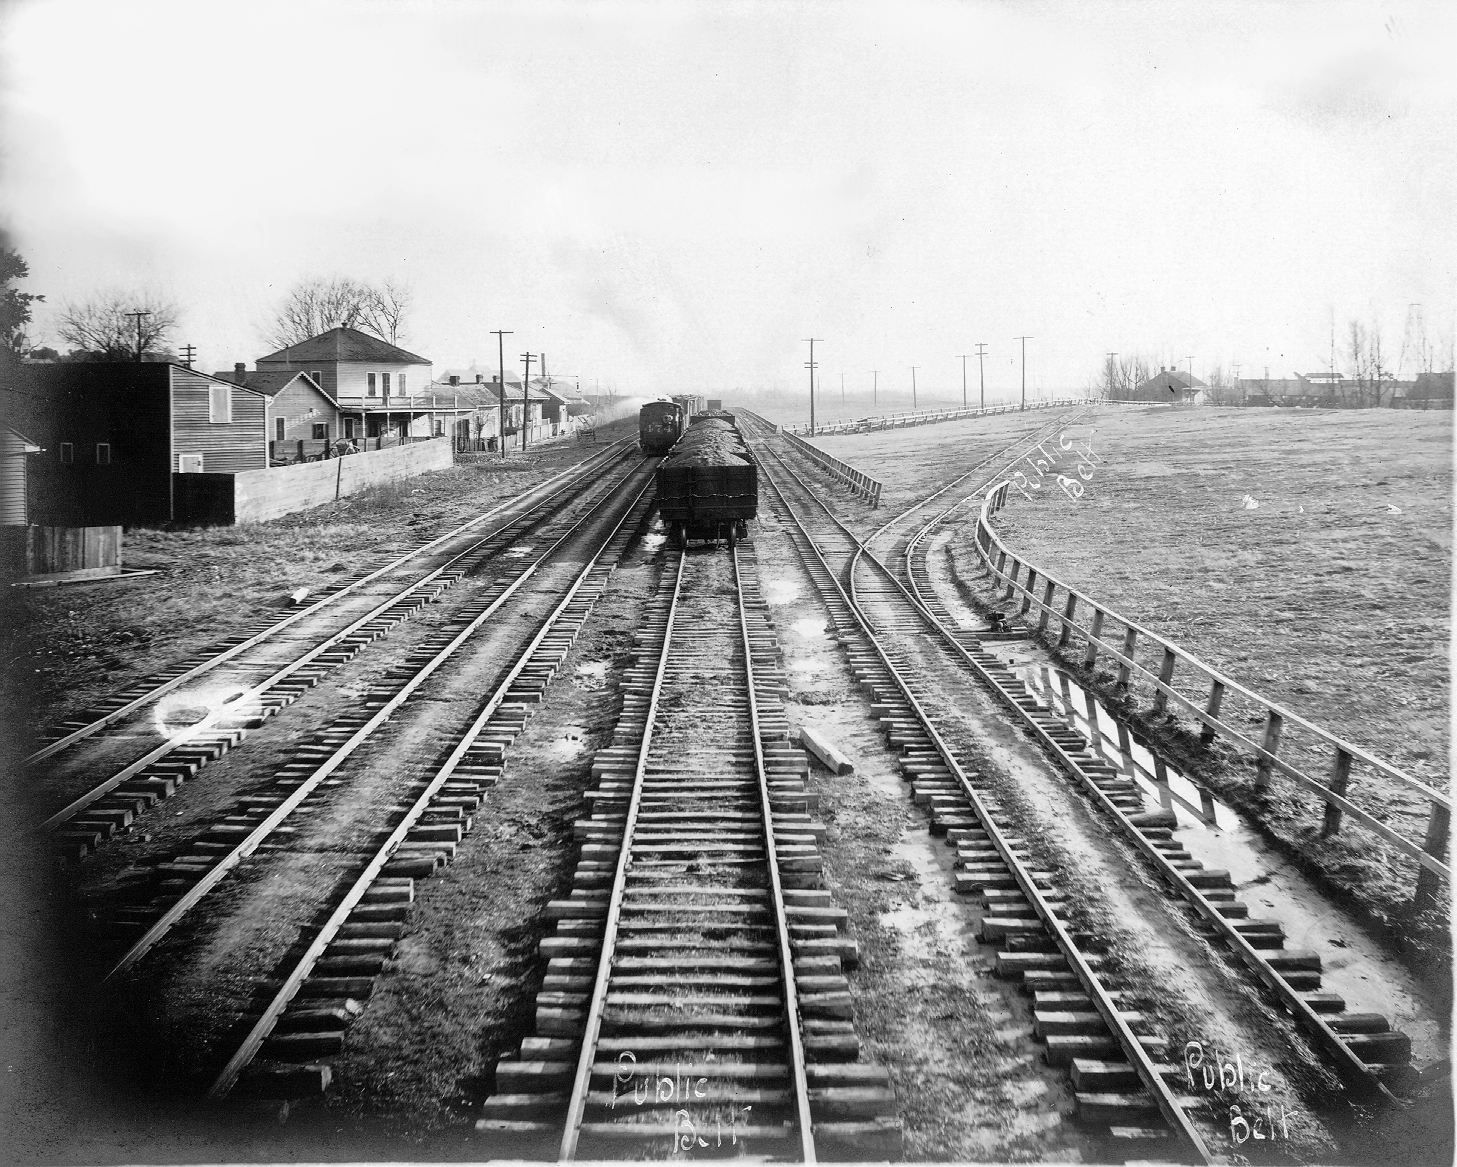 New Orleans Public Belt Railroad in 1908